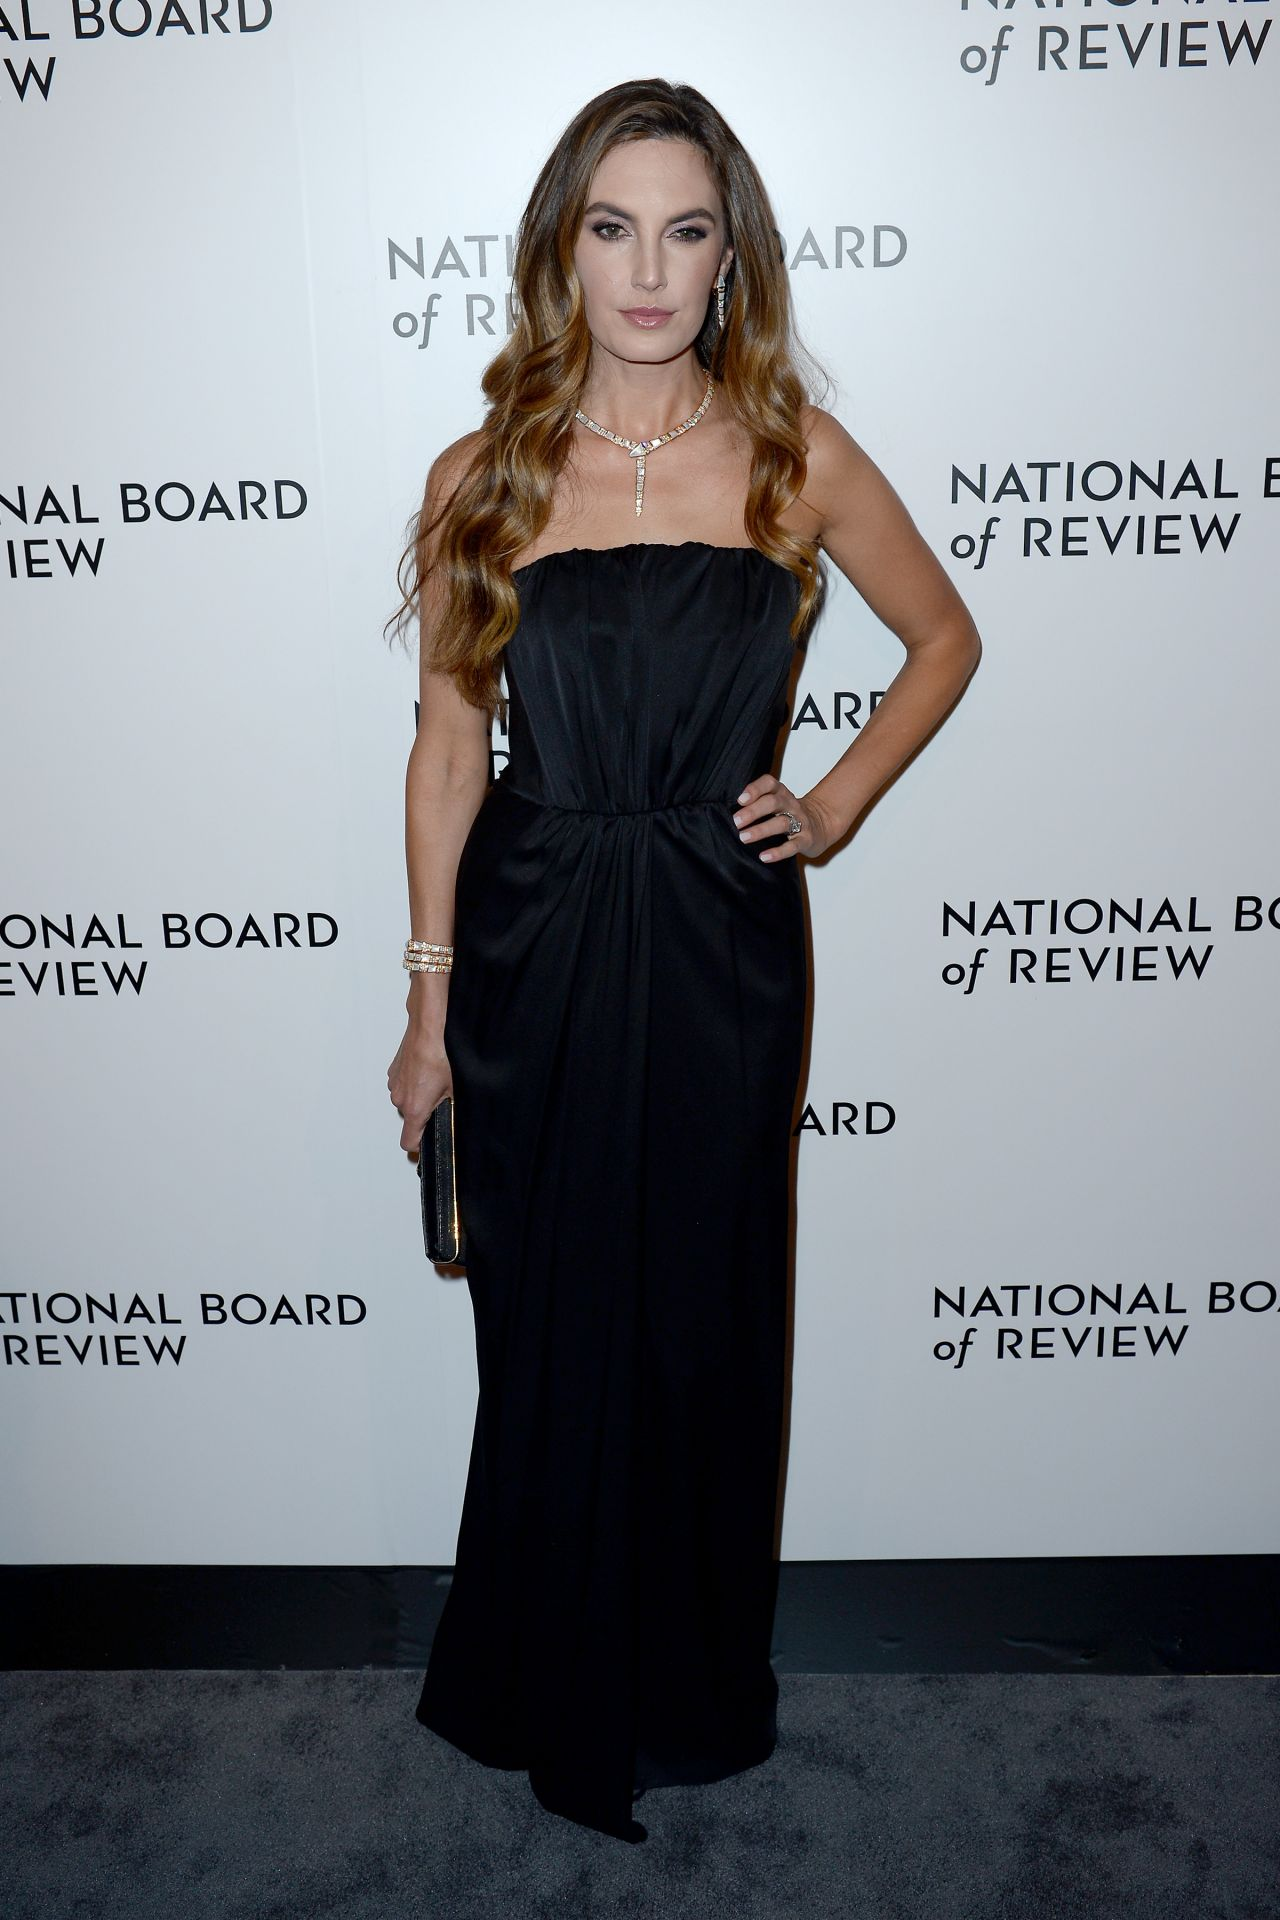 Chambers – National Board Of Review Annual Awards Gala in NYC